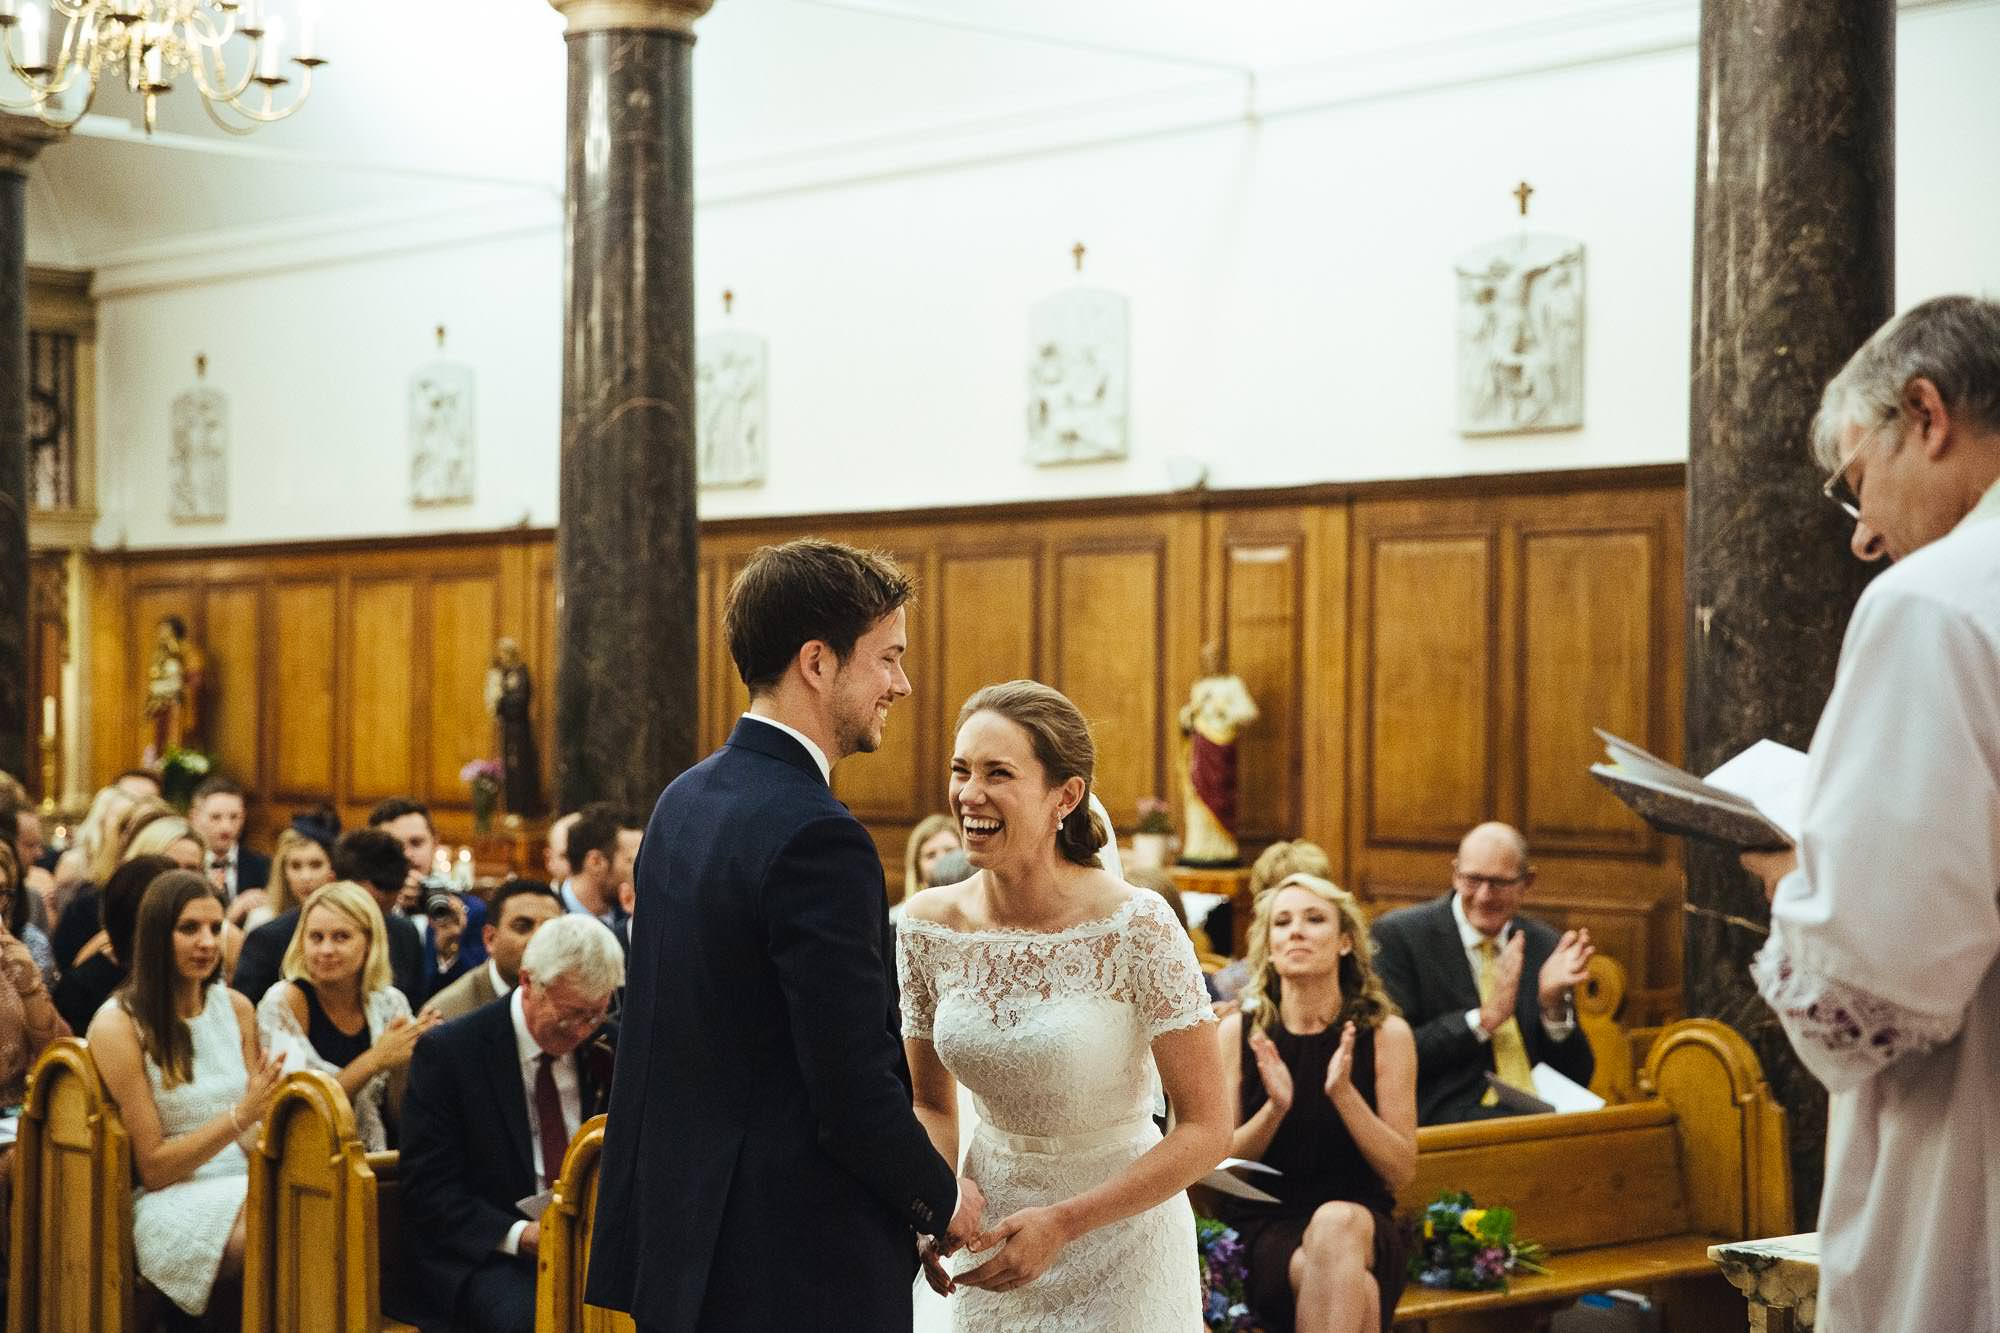 st-mary-moorfields-wedding-25-of-82